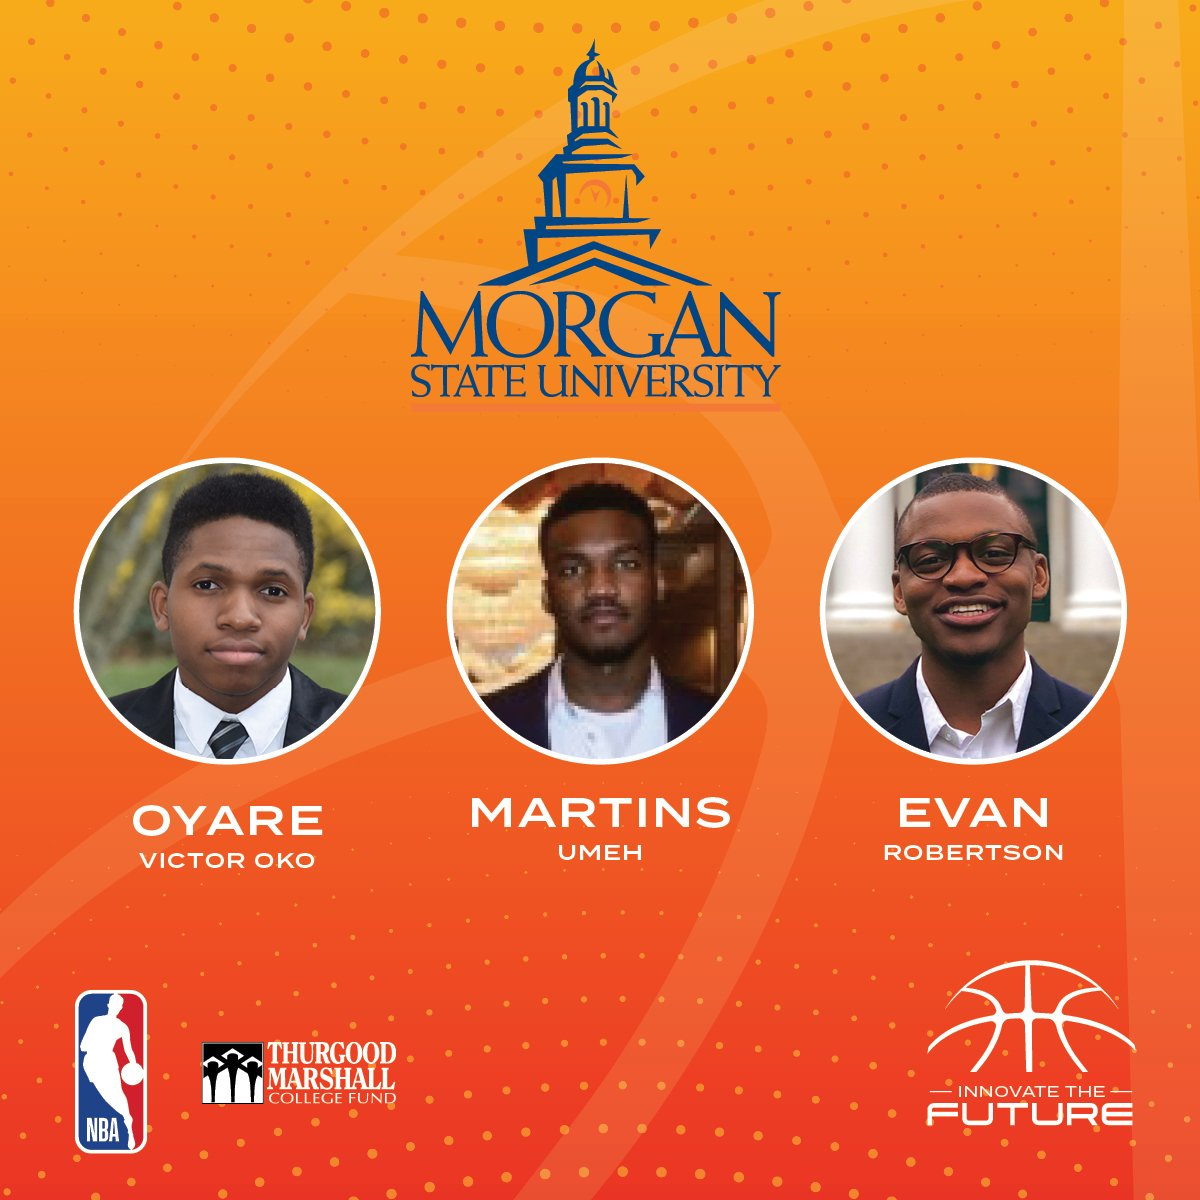 """Congratulations to the scholars from @MorganStateU on winning the virtual @tmcf_hbcu """"Innovate the Future"""" Business Competition!  Each scholar will receive the David J. Stern Sports Scholarship towards their continued education!  #NBATogether #ActsofCaring"""